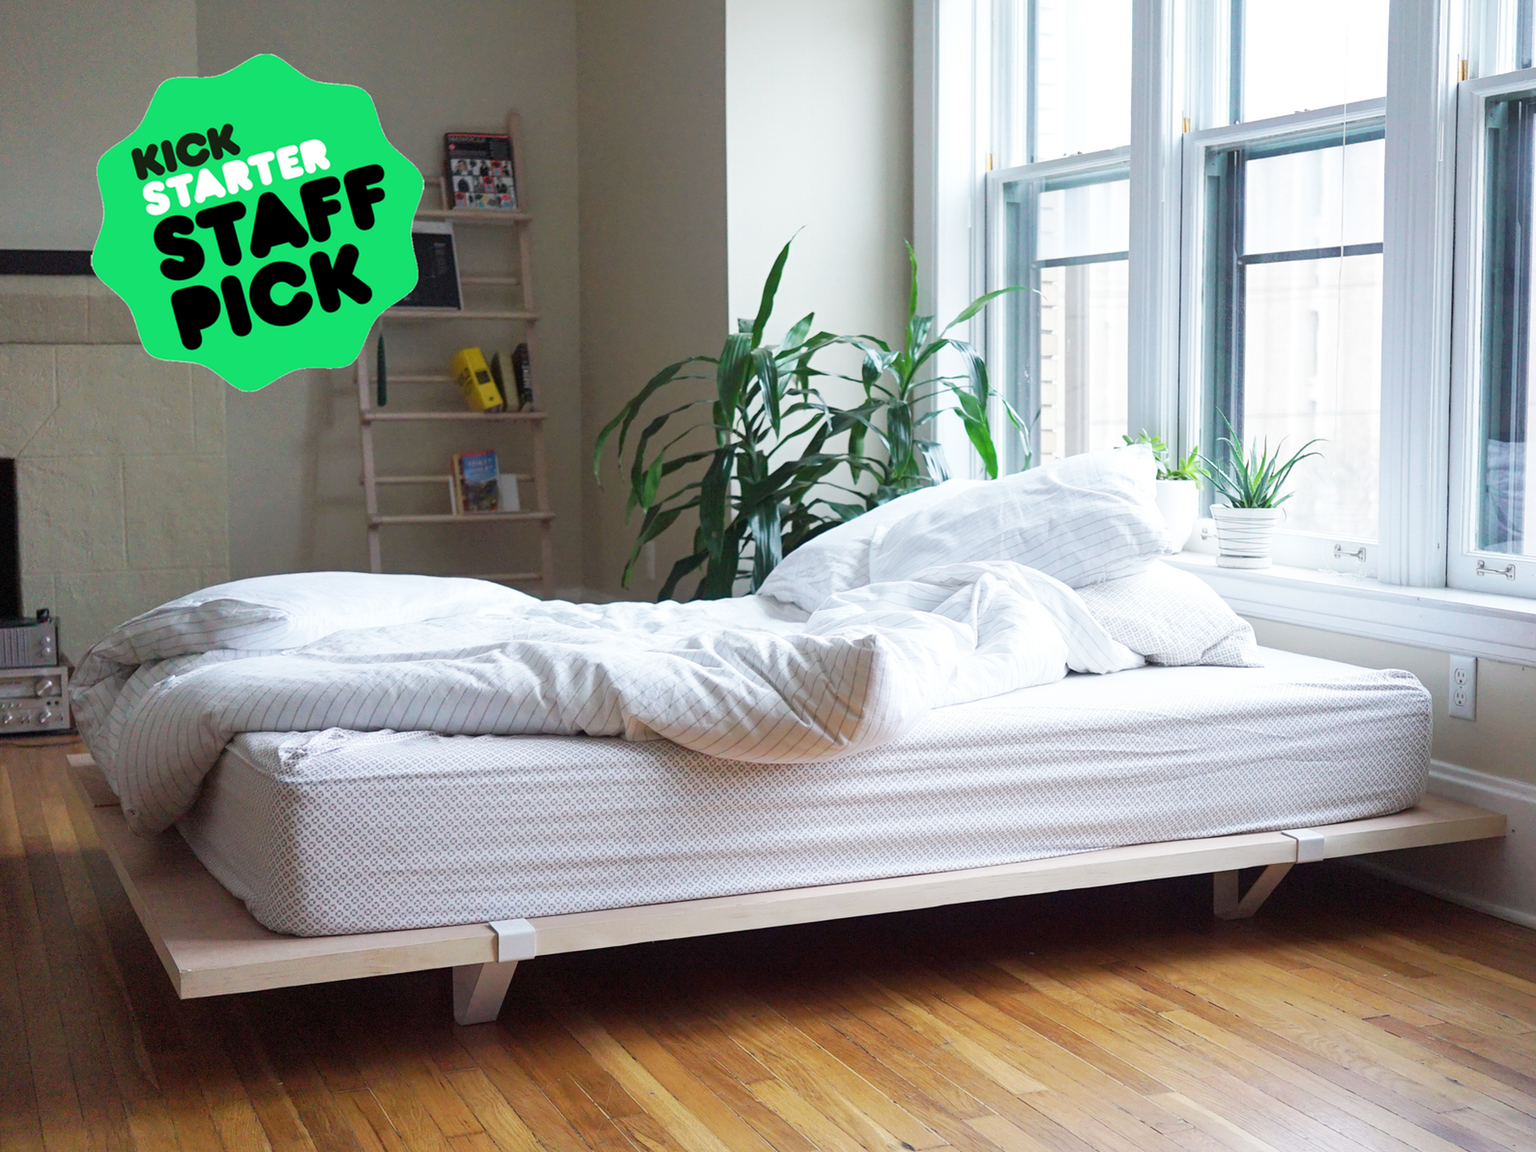 A Minimal Long Lasting Modular Bed Frame Designed For City